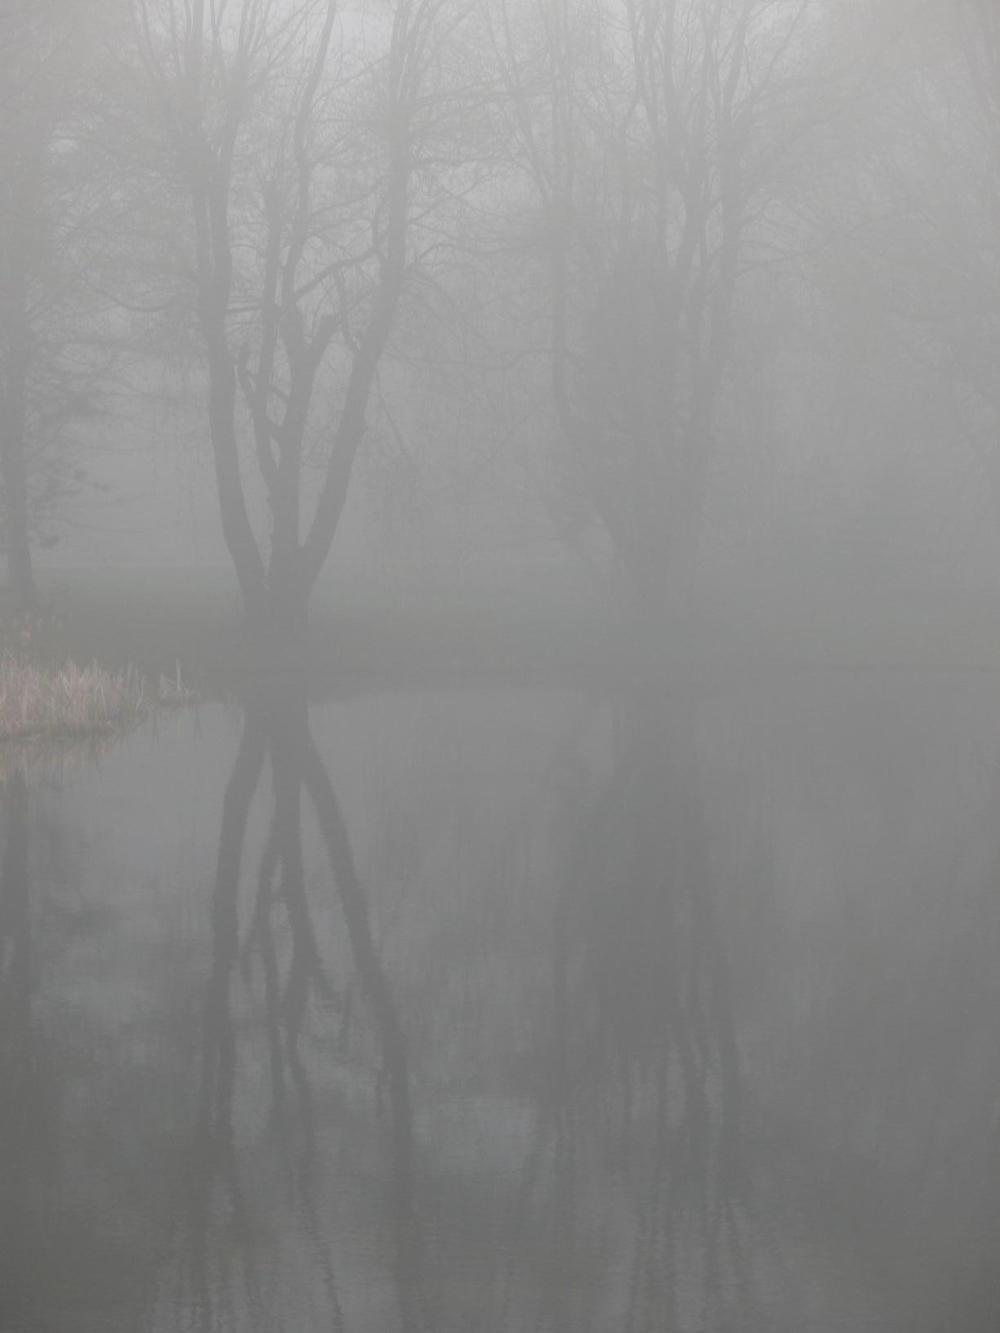 Willows-in-the-mist.jpg